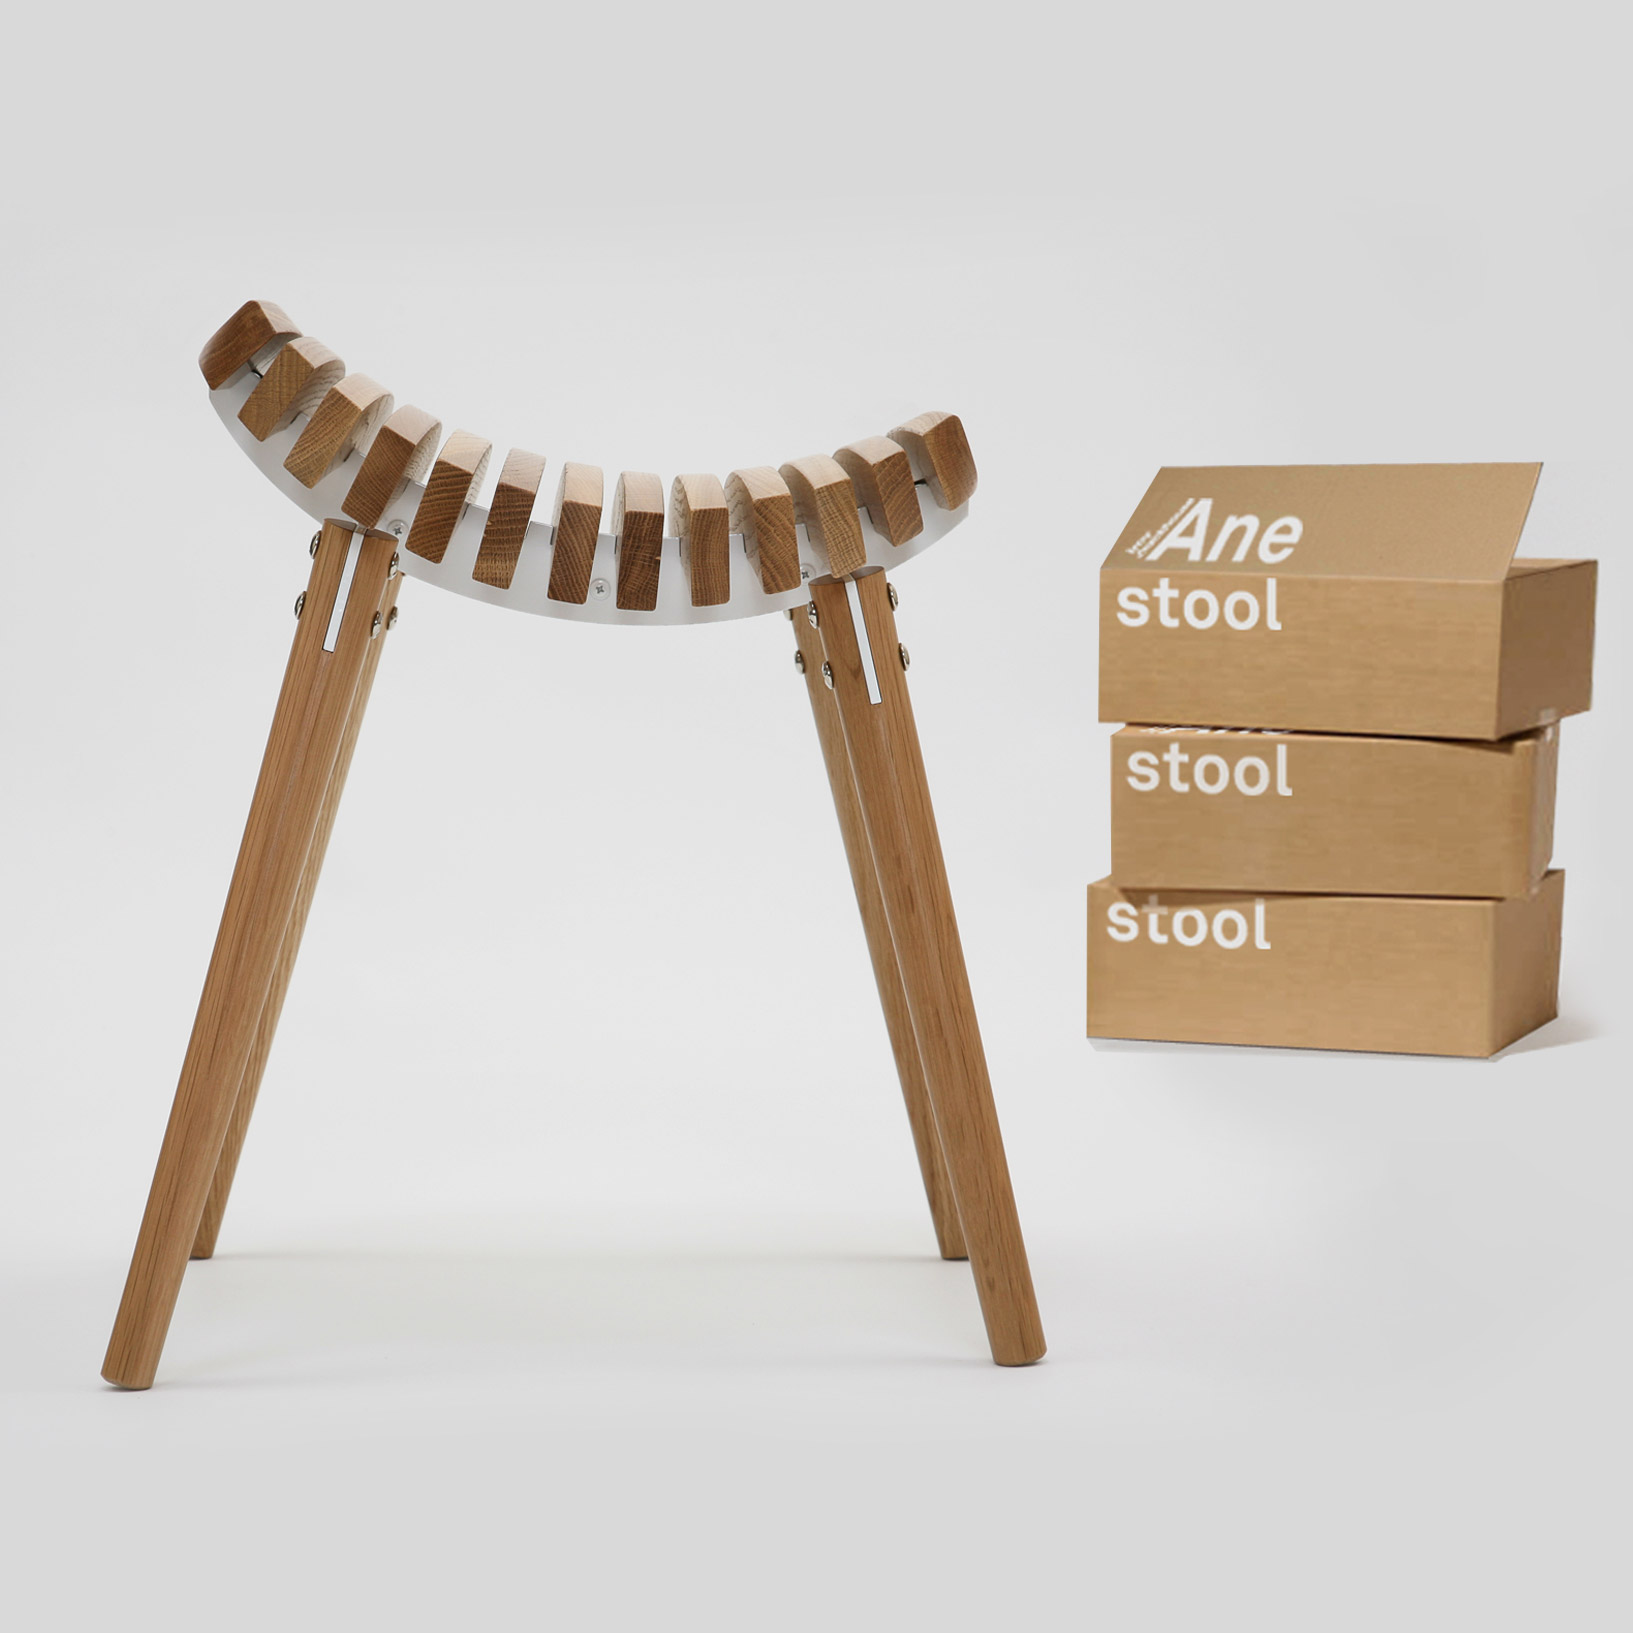 Ane stool with white frame flat packed